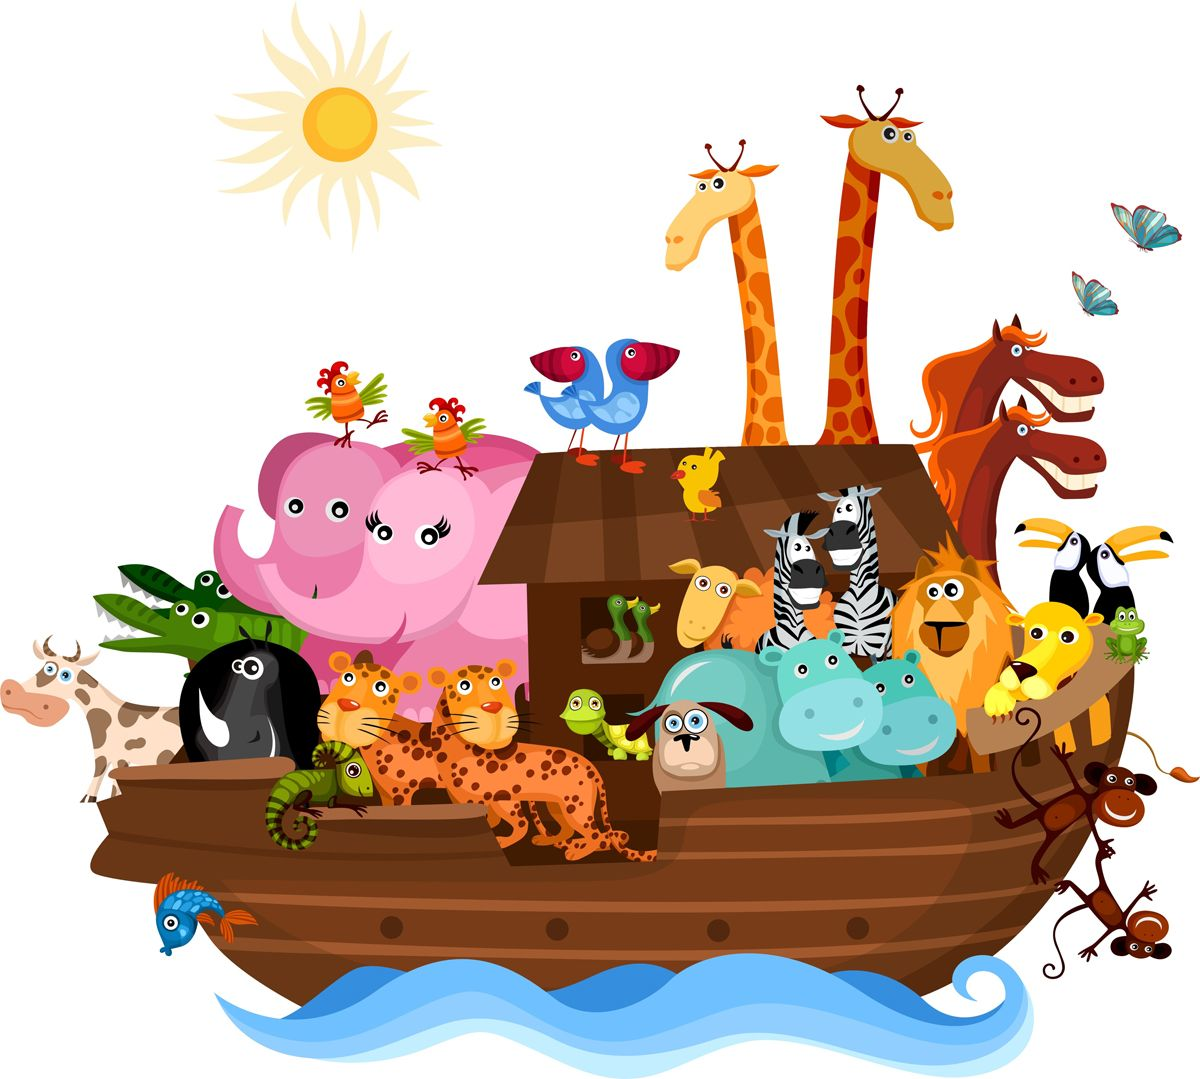 Arca Noe Animales 2 Jpg 1200 1079 Noahs Ark Removable Wall Stickers Wall Stickers Home Decor